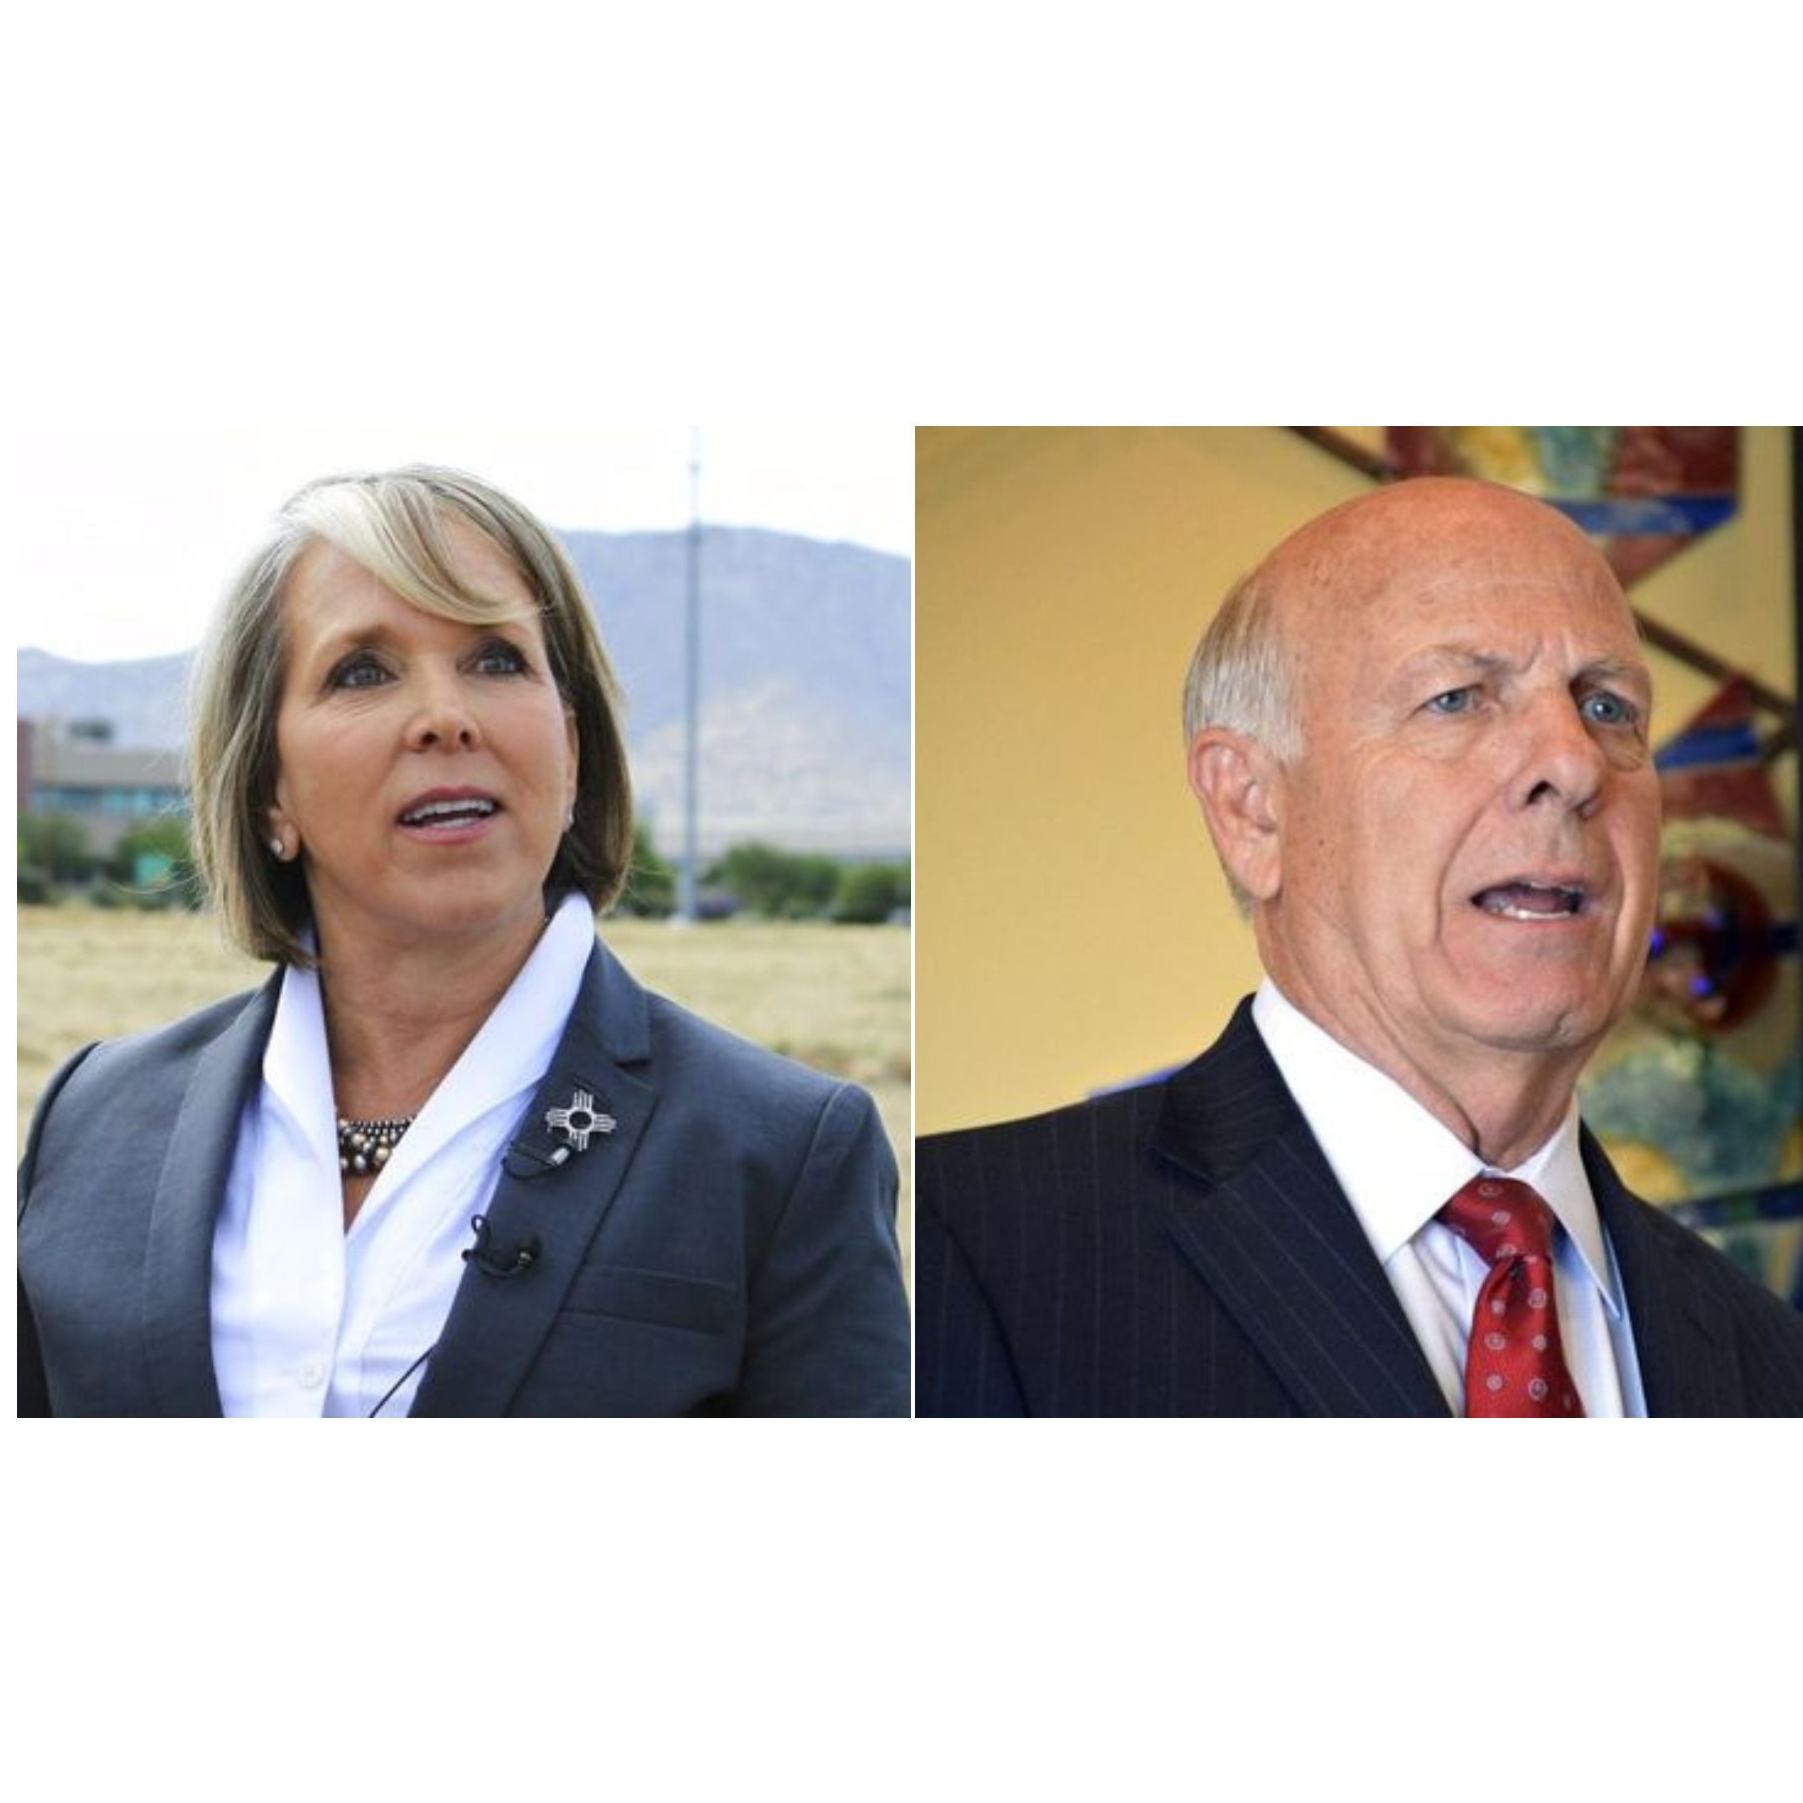 Michelle Lujan Grisham and Steve Pearce clash during debate